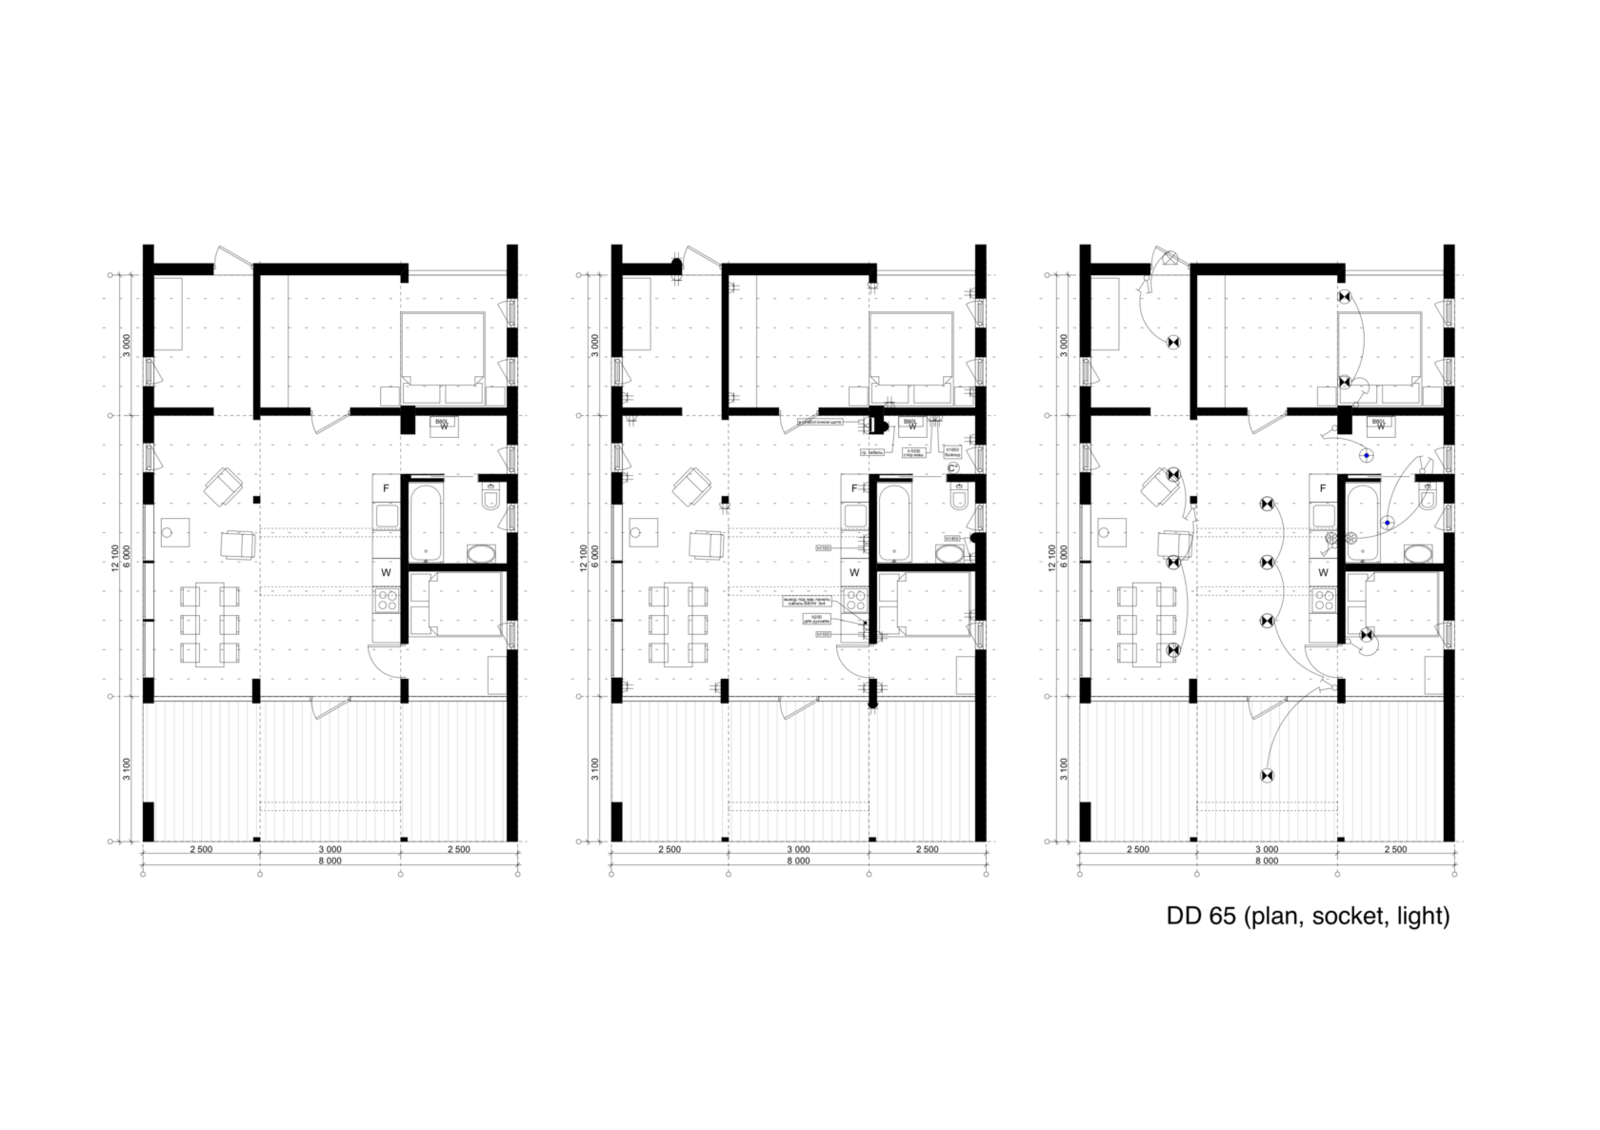 DD 65 floor plan drawing  Photo 16 of 22 in DublDom Prefab Homes Can Be Built in One Day